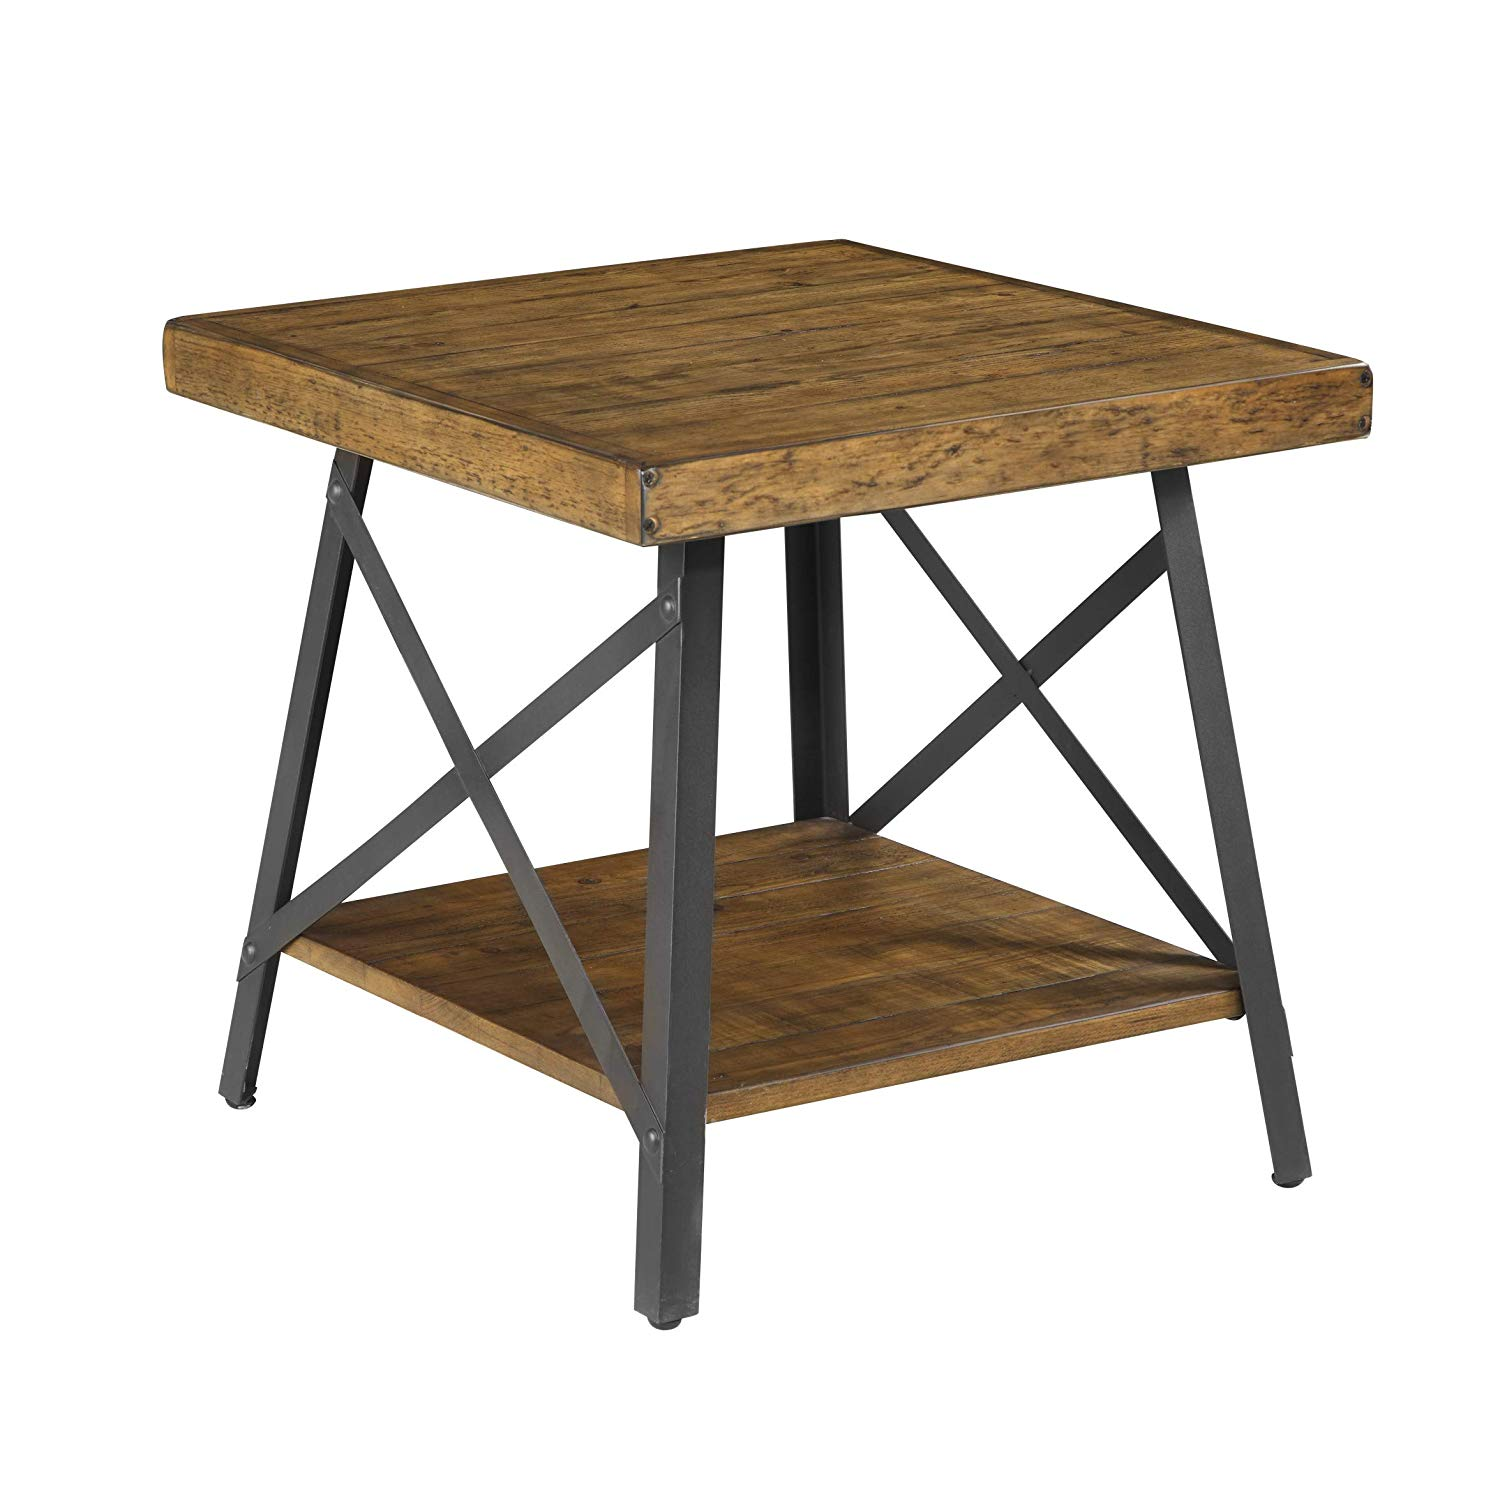 emerald home chandler rustic wood end table with solid accent five below top metal base and open storage shelf kitchen dining contemporary garden furniture all tables hampton bay